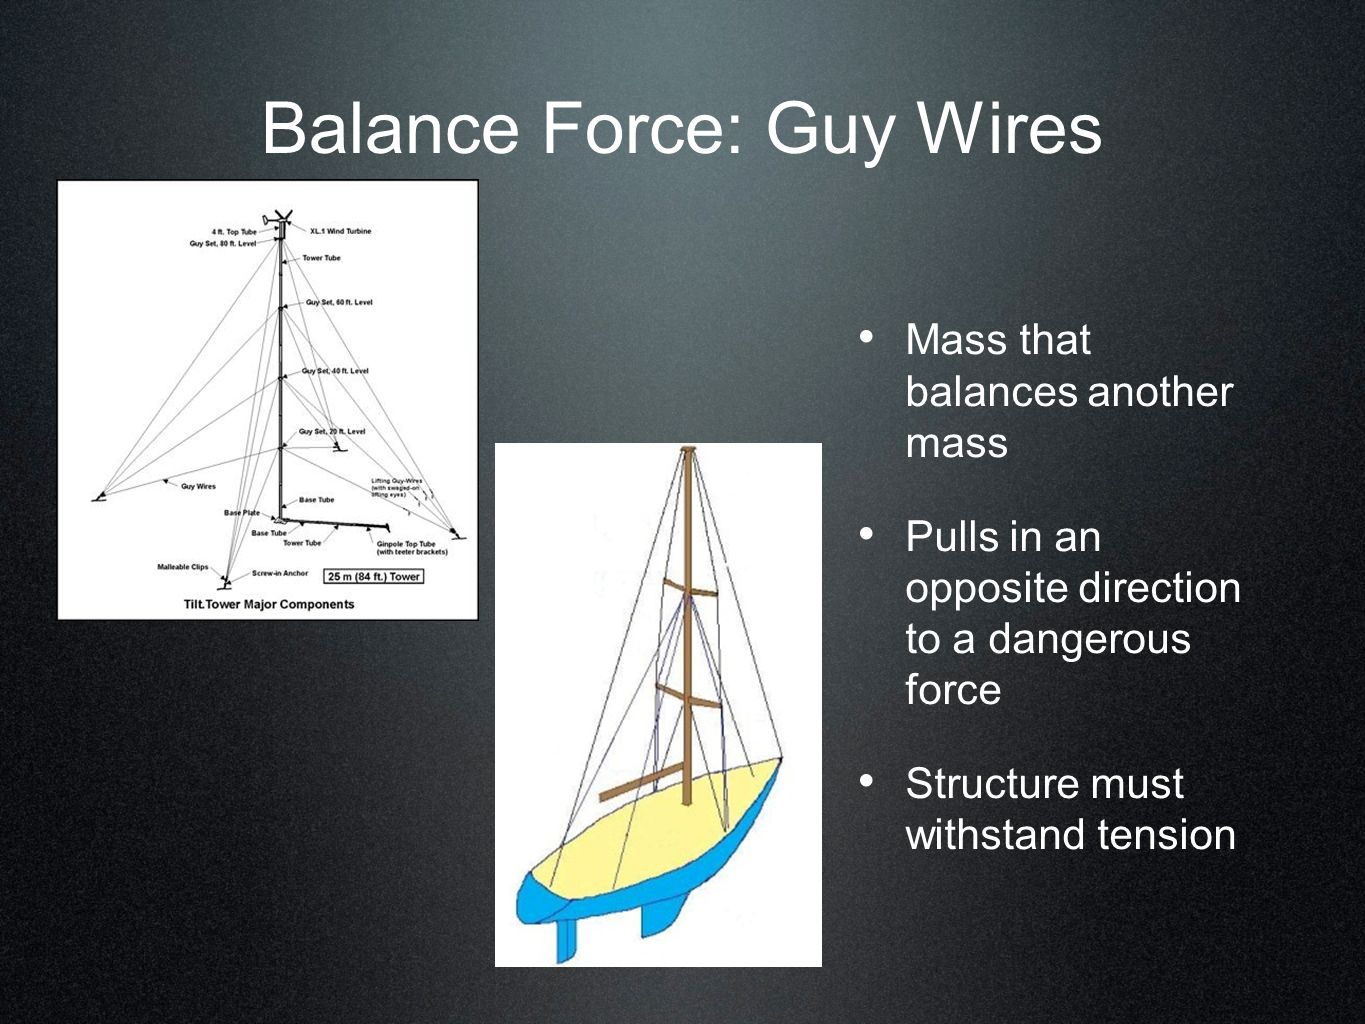 Balance Force: Guy Wires